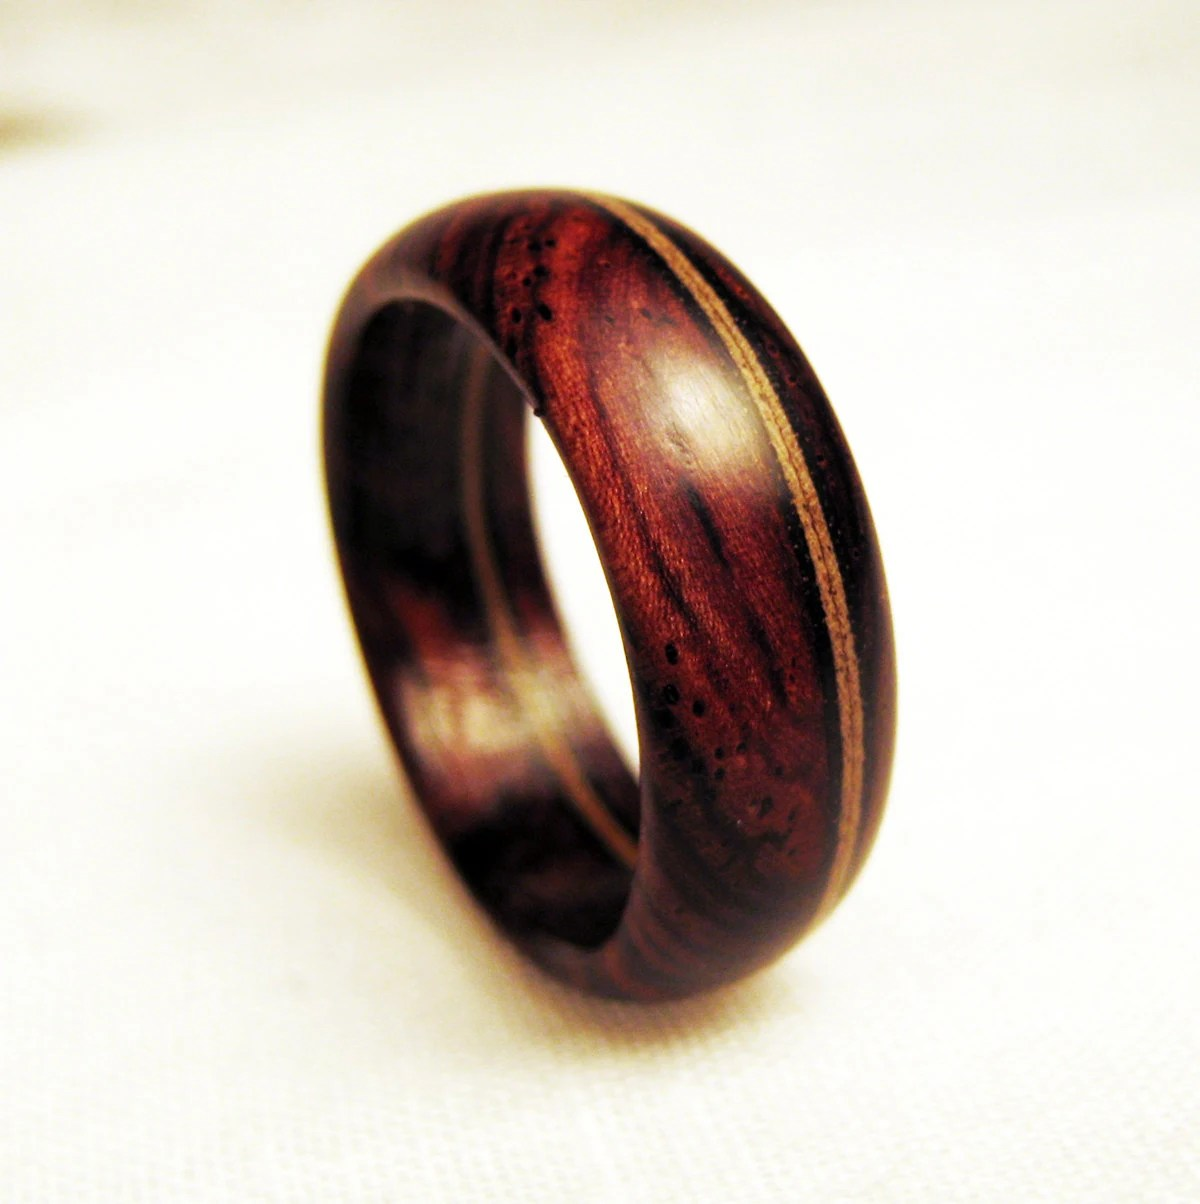 Wood Band Ring Offset Mahogany Veneer Within Cocobolo